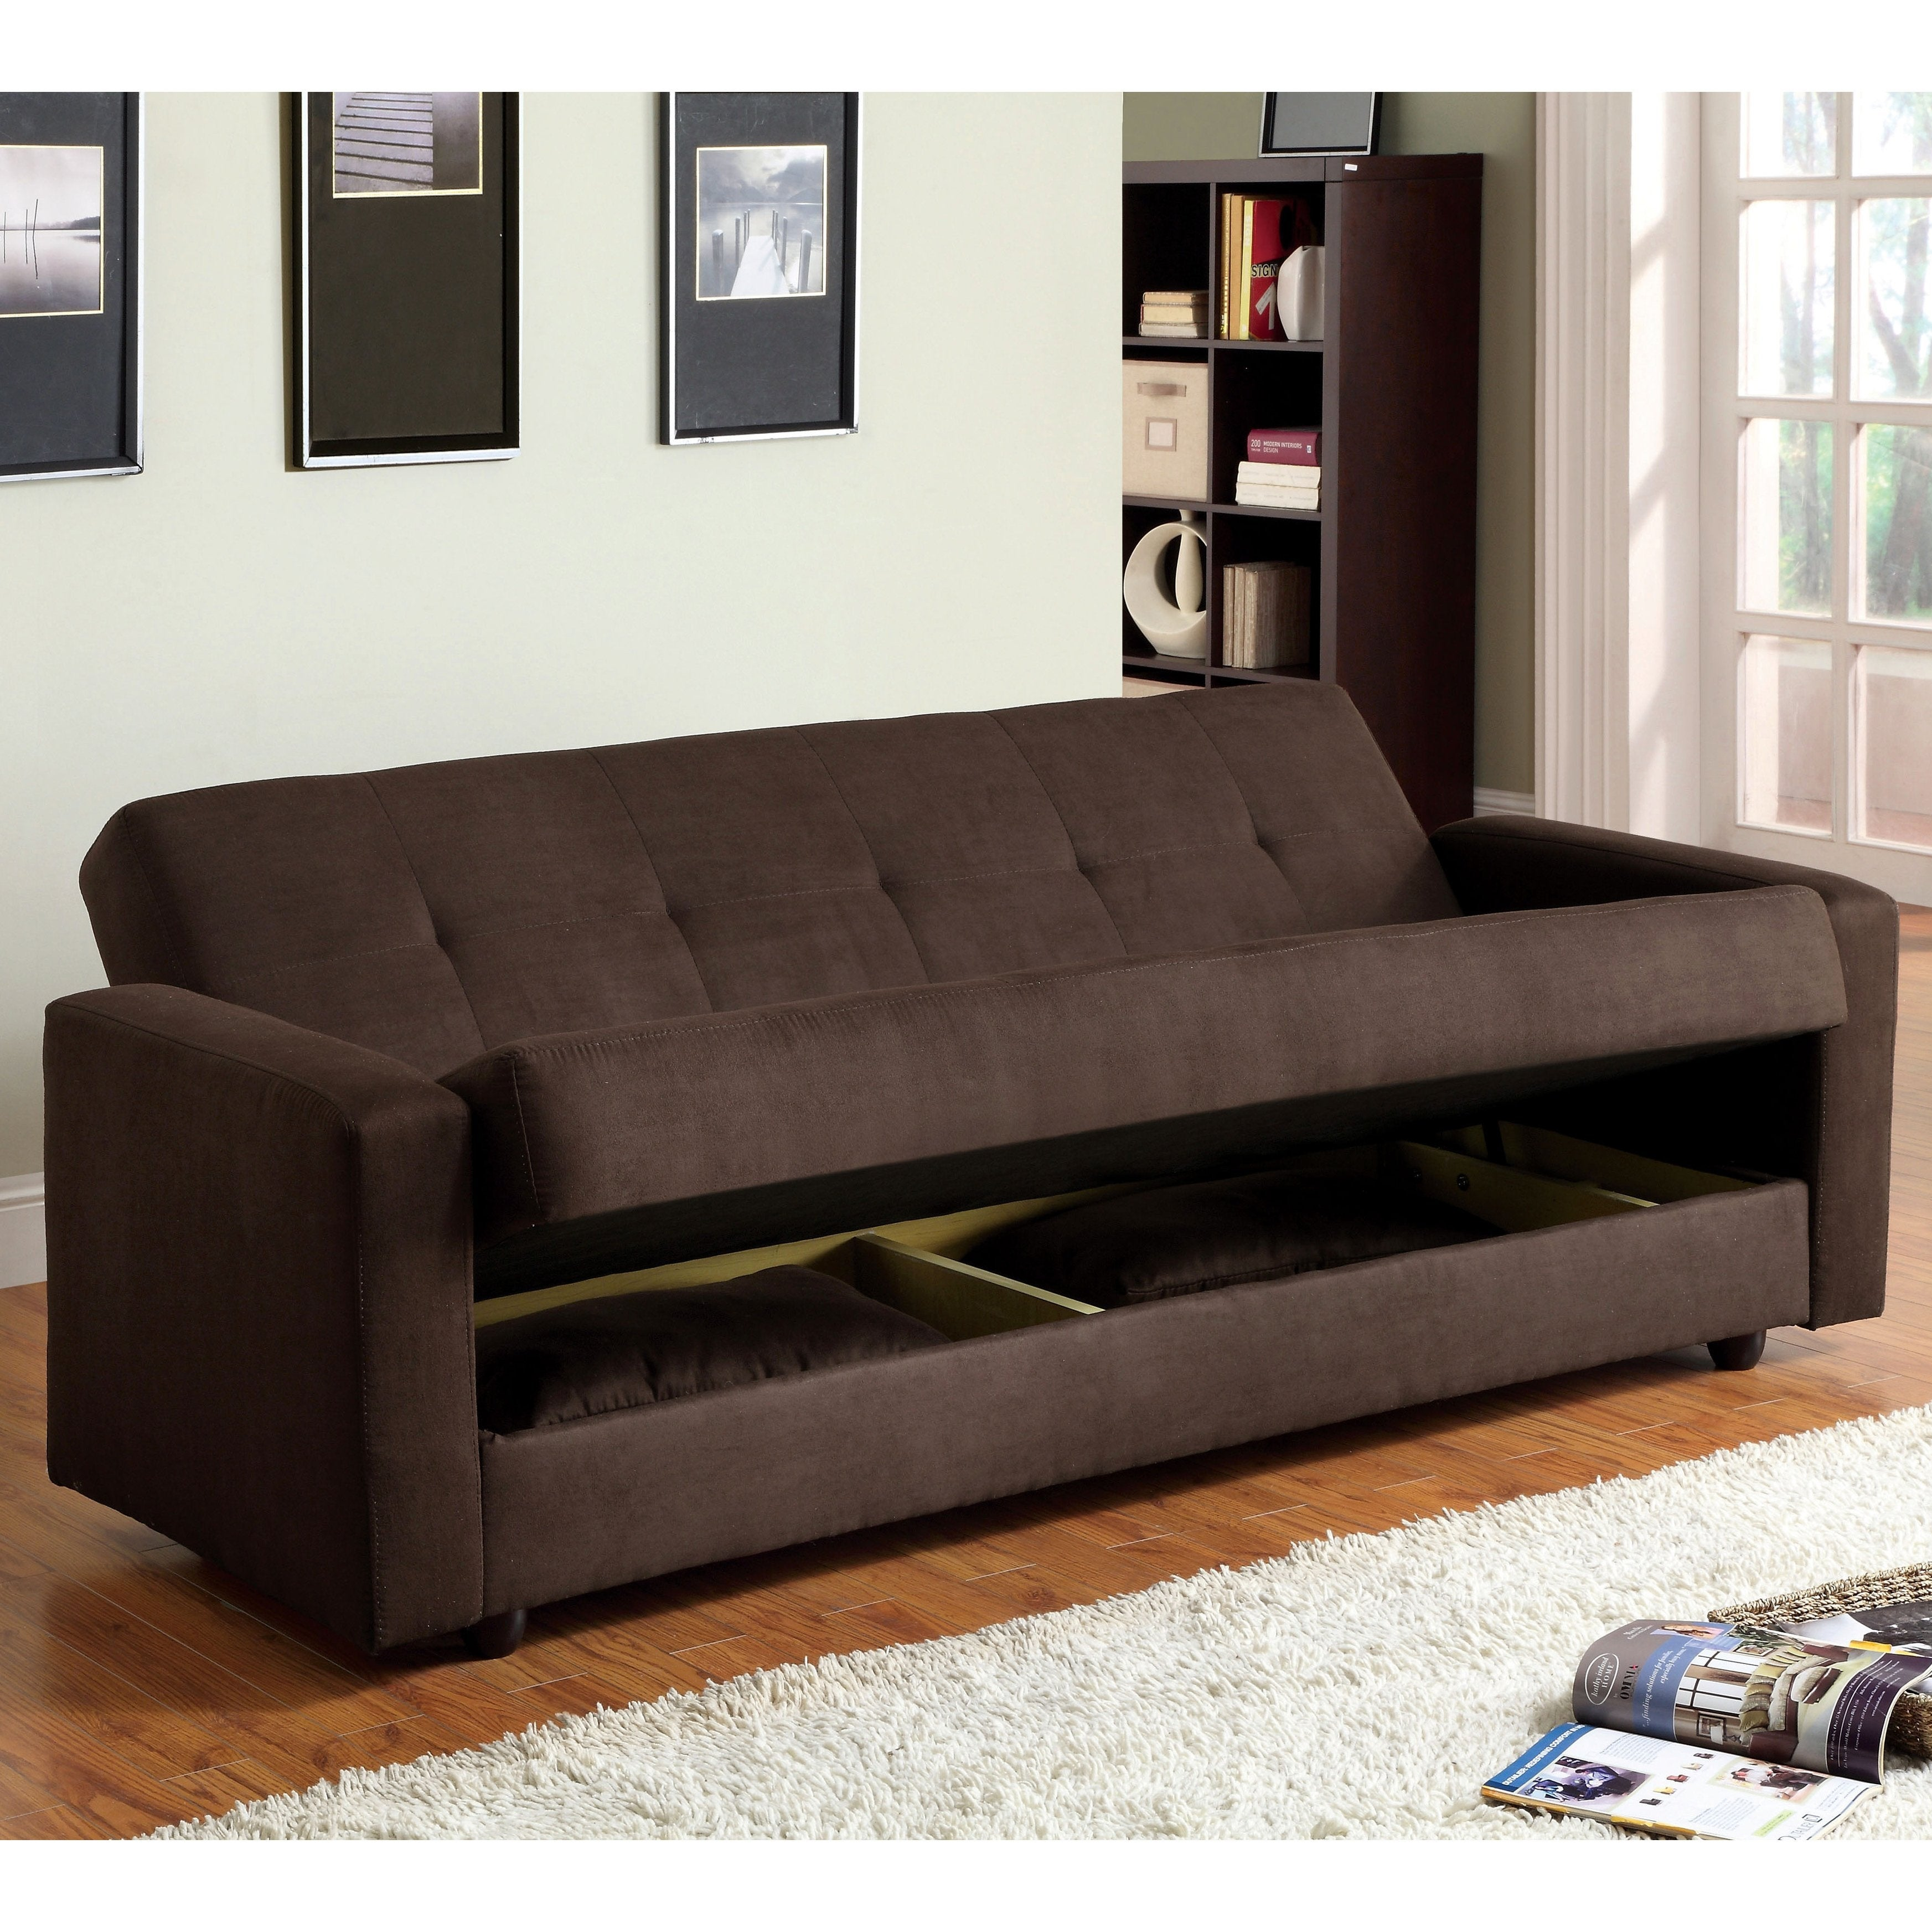 Cozy Contemporary Brown Fabric Futon